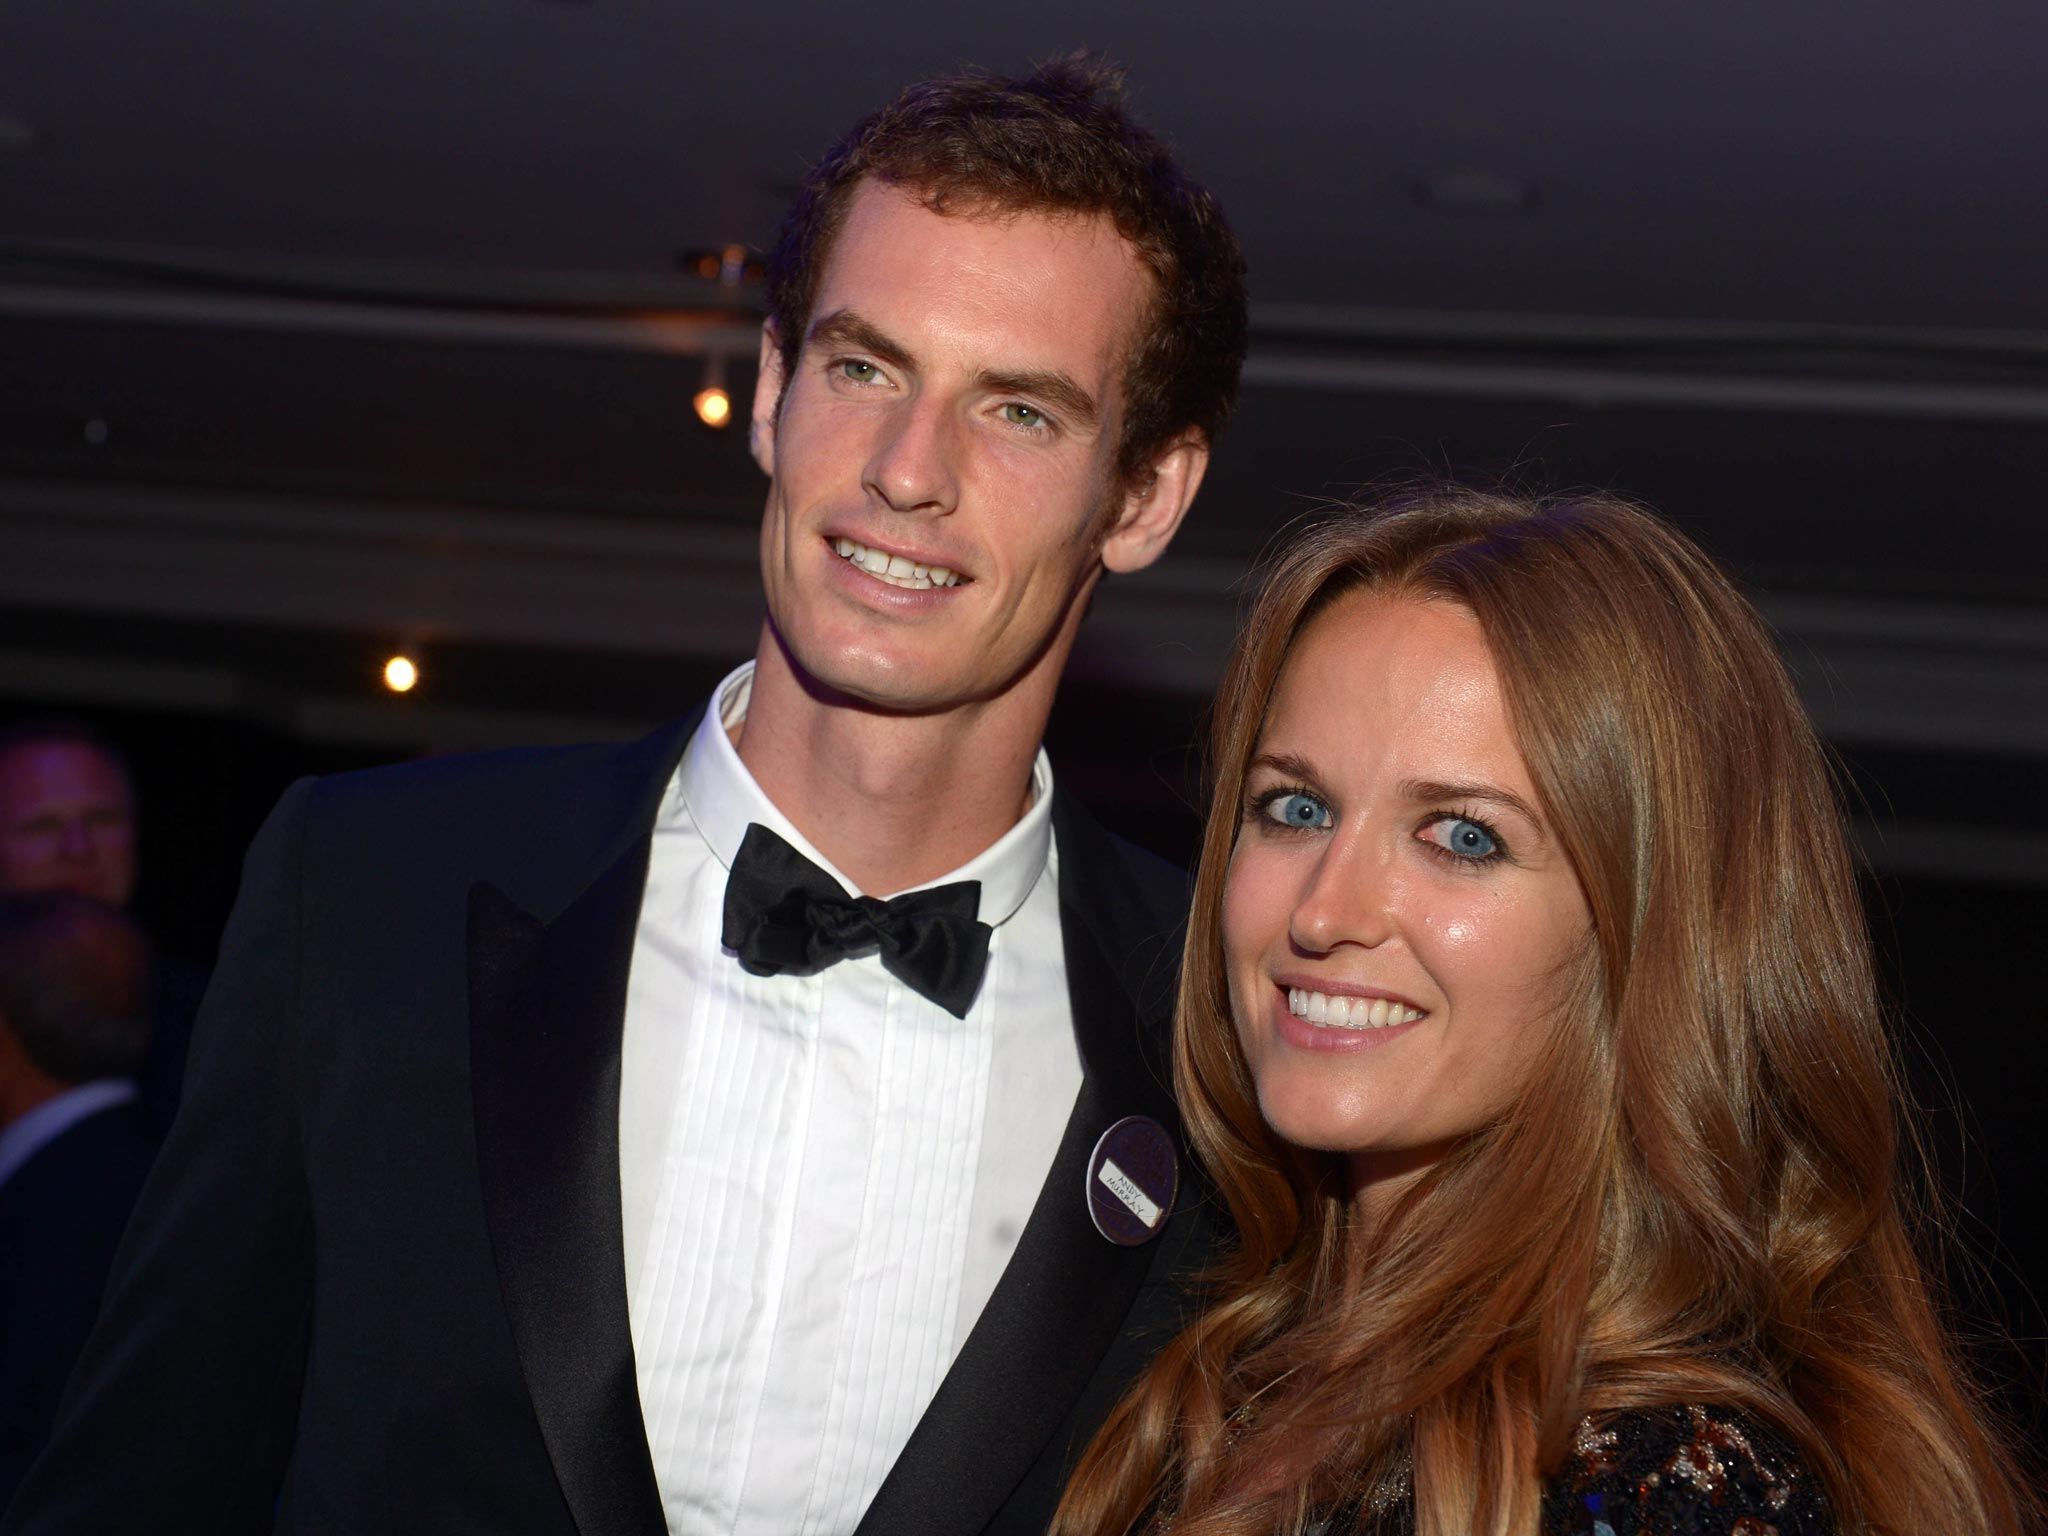 Andy Murray Will Not Be Getting Married To Kim Sears After Wimbledon Doesn T Smoke Weed And Doesn T Want To Kill Rafael Nadal The Independent The Independent